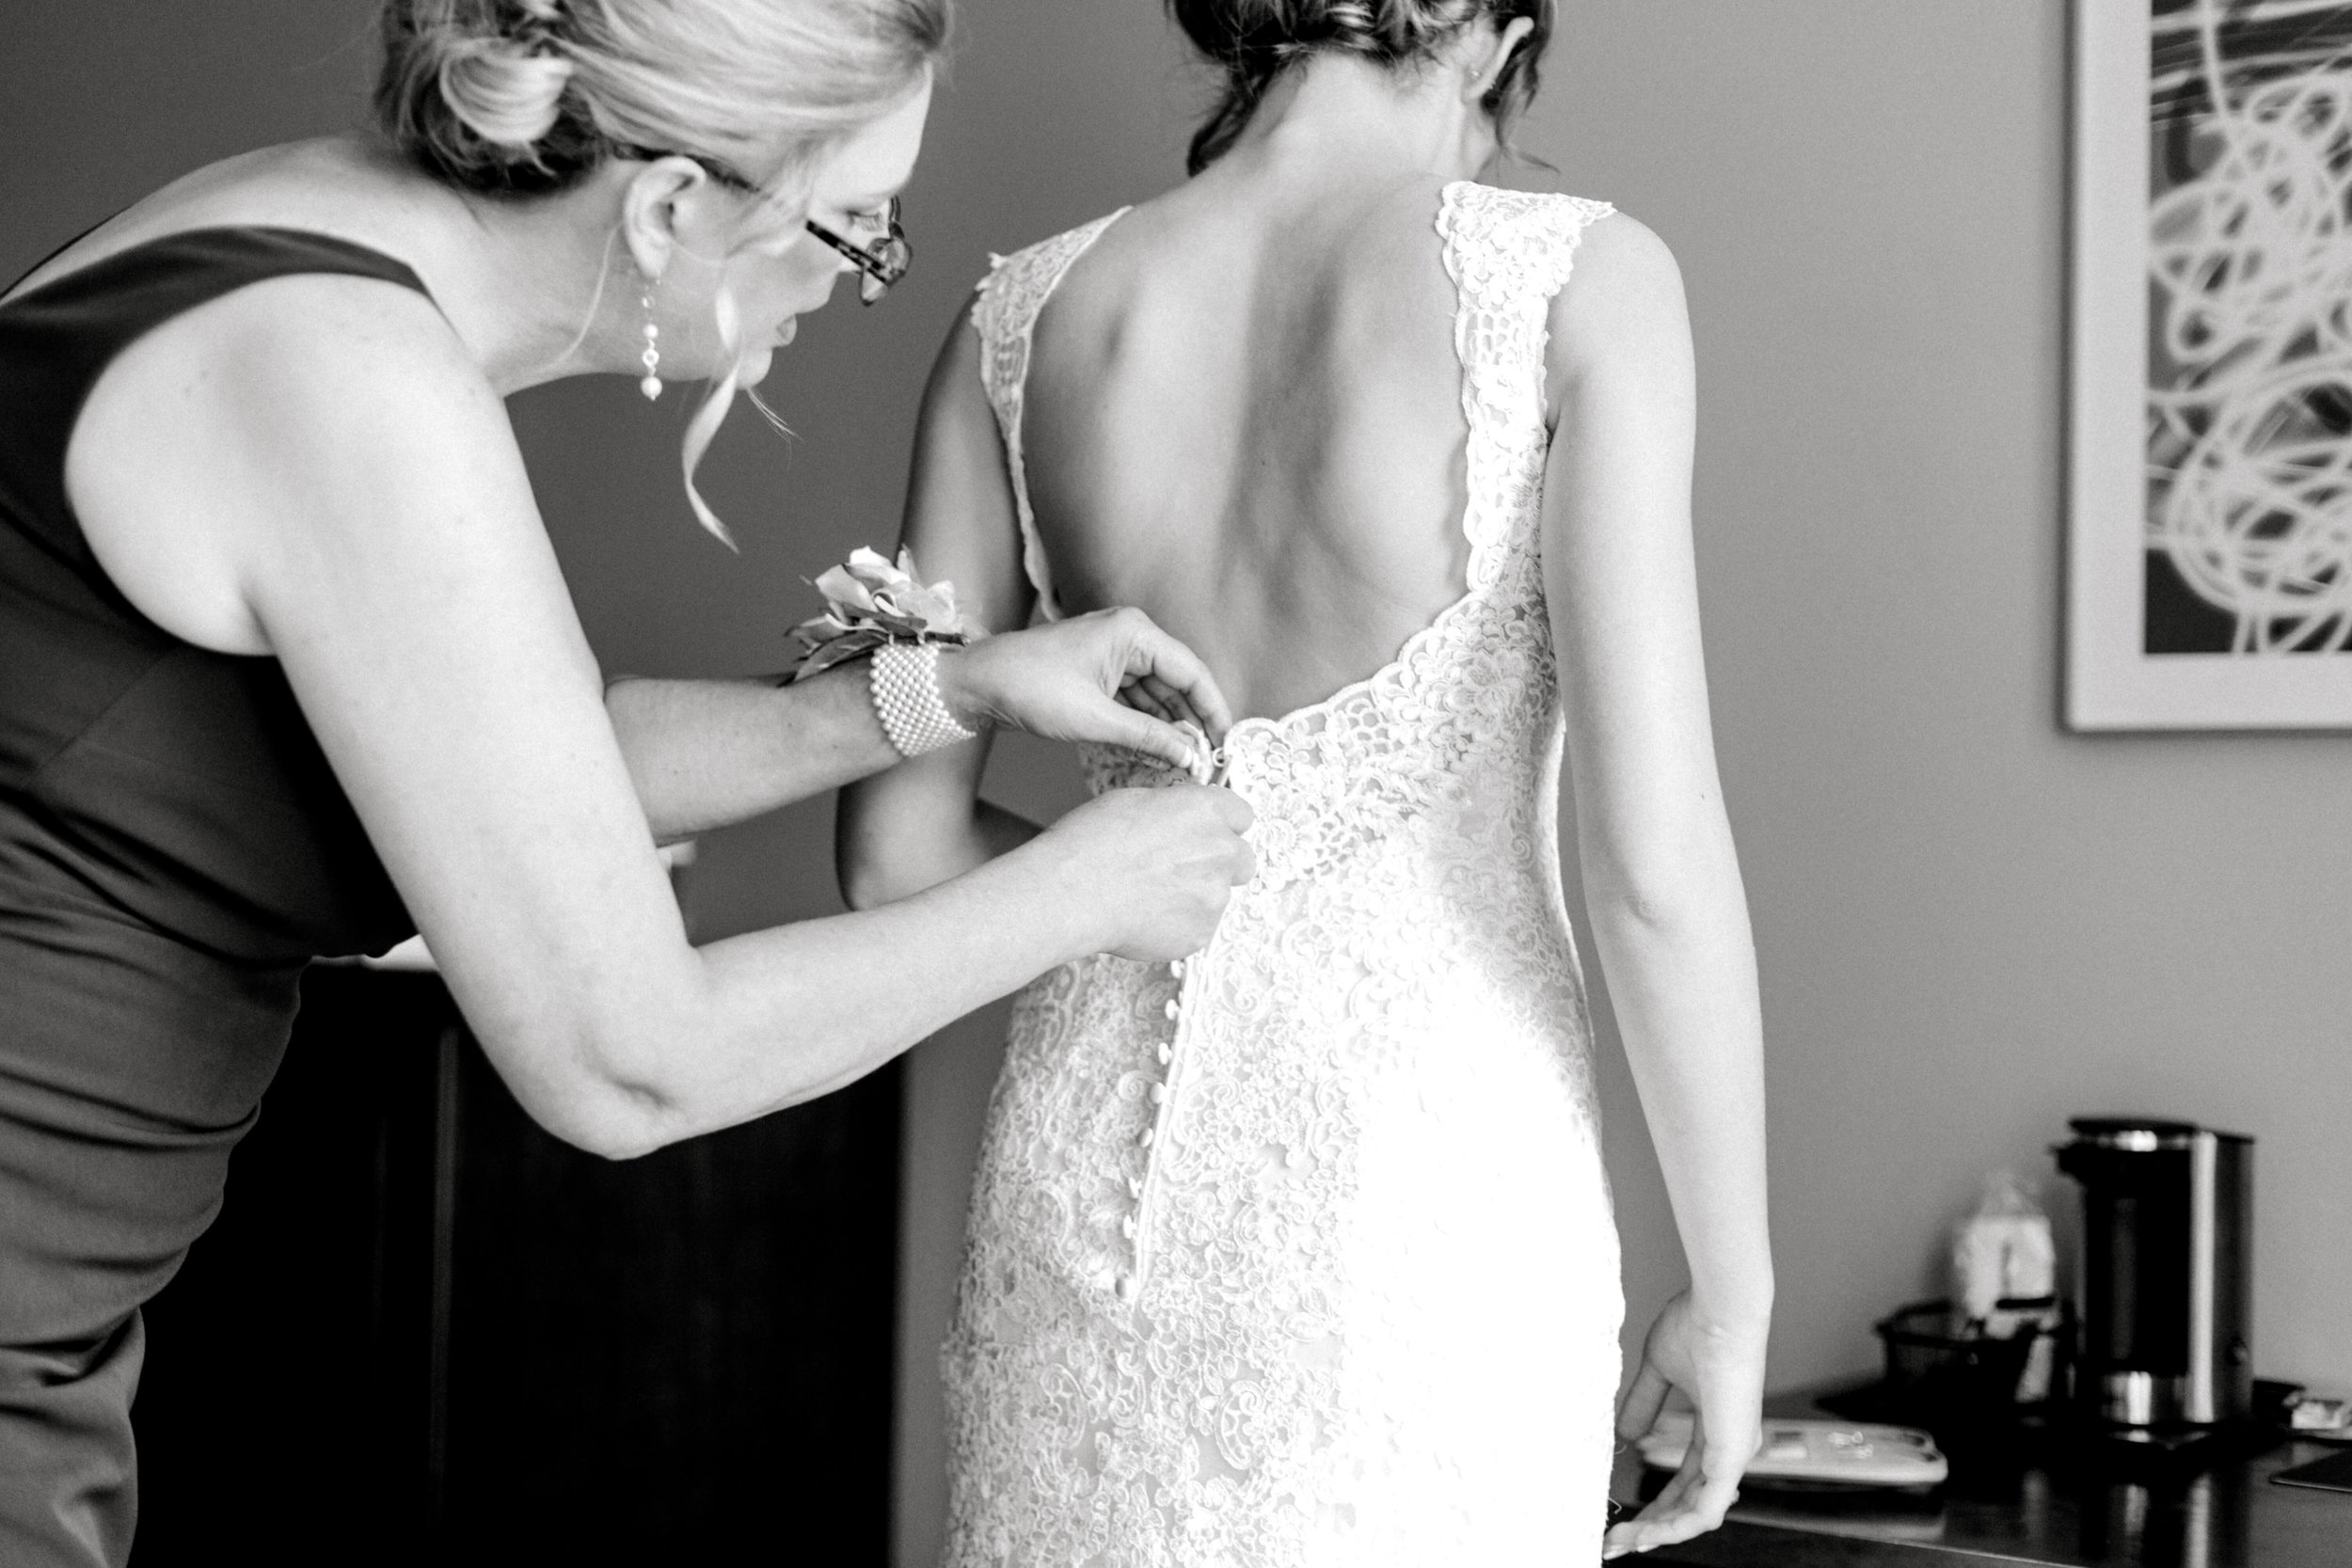 bride getting ready, buttoning dress | Lauren Baker Photography Minneapolis wedding photographer | Sixpence Events blog post Wedding Photography Tips